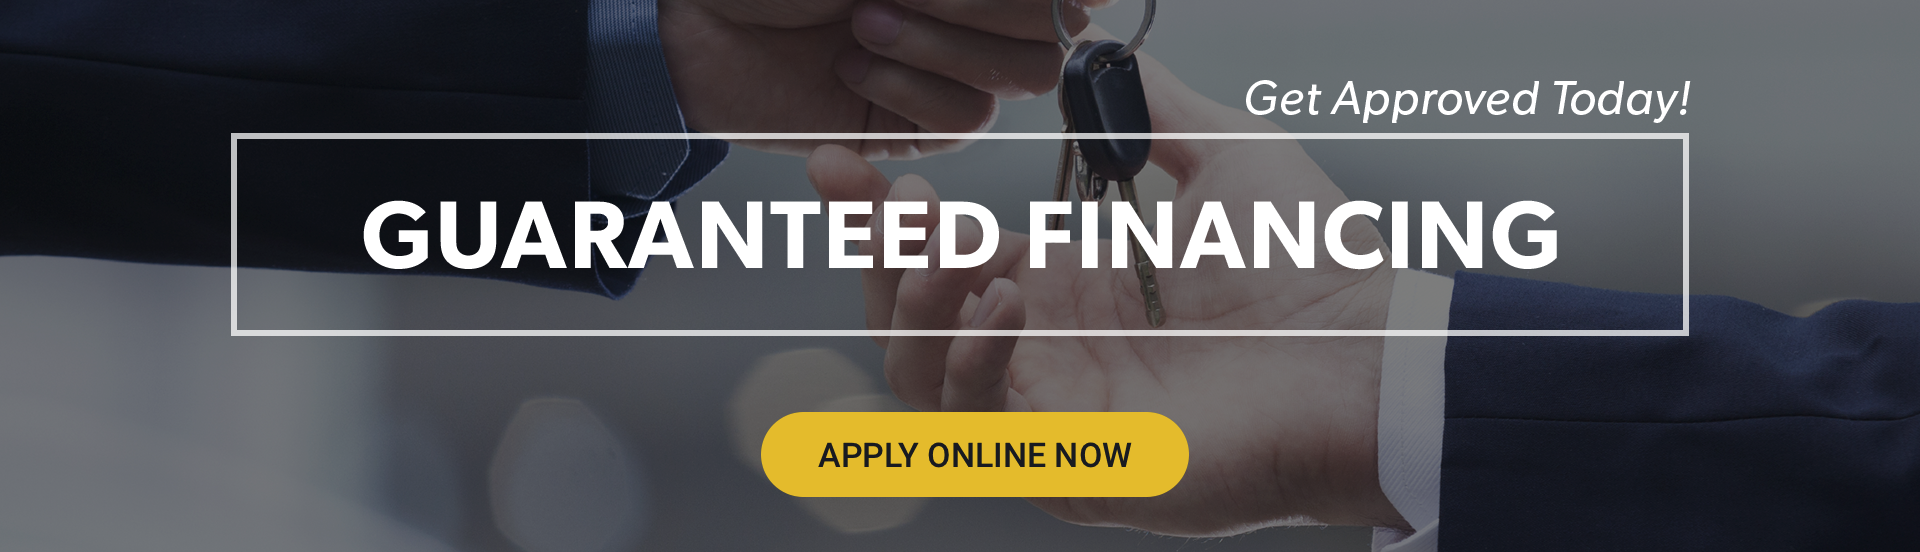 guaranteed financing